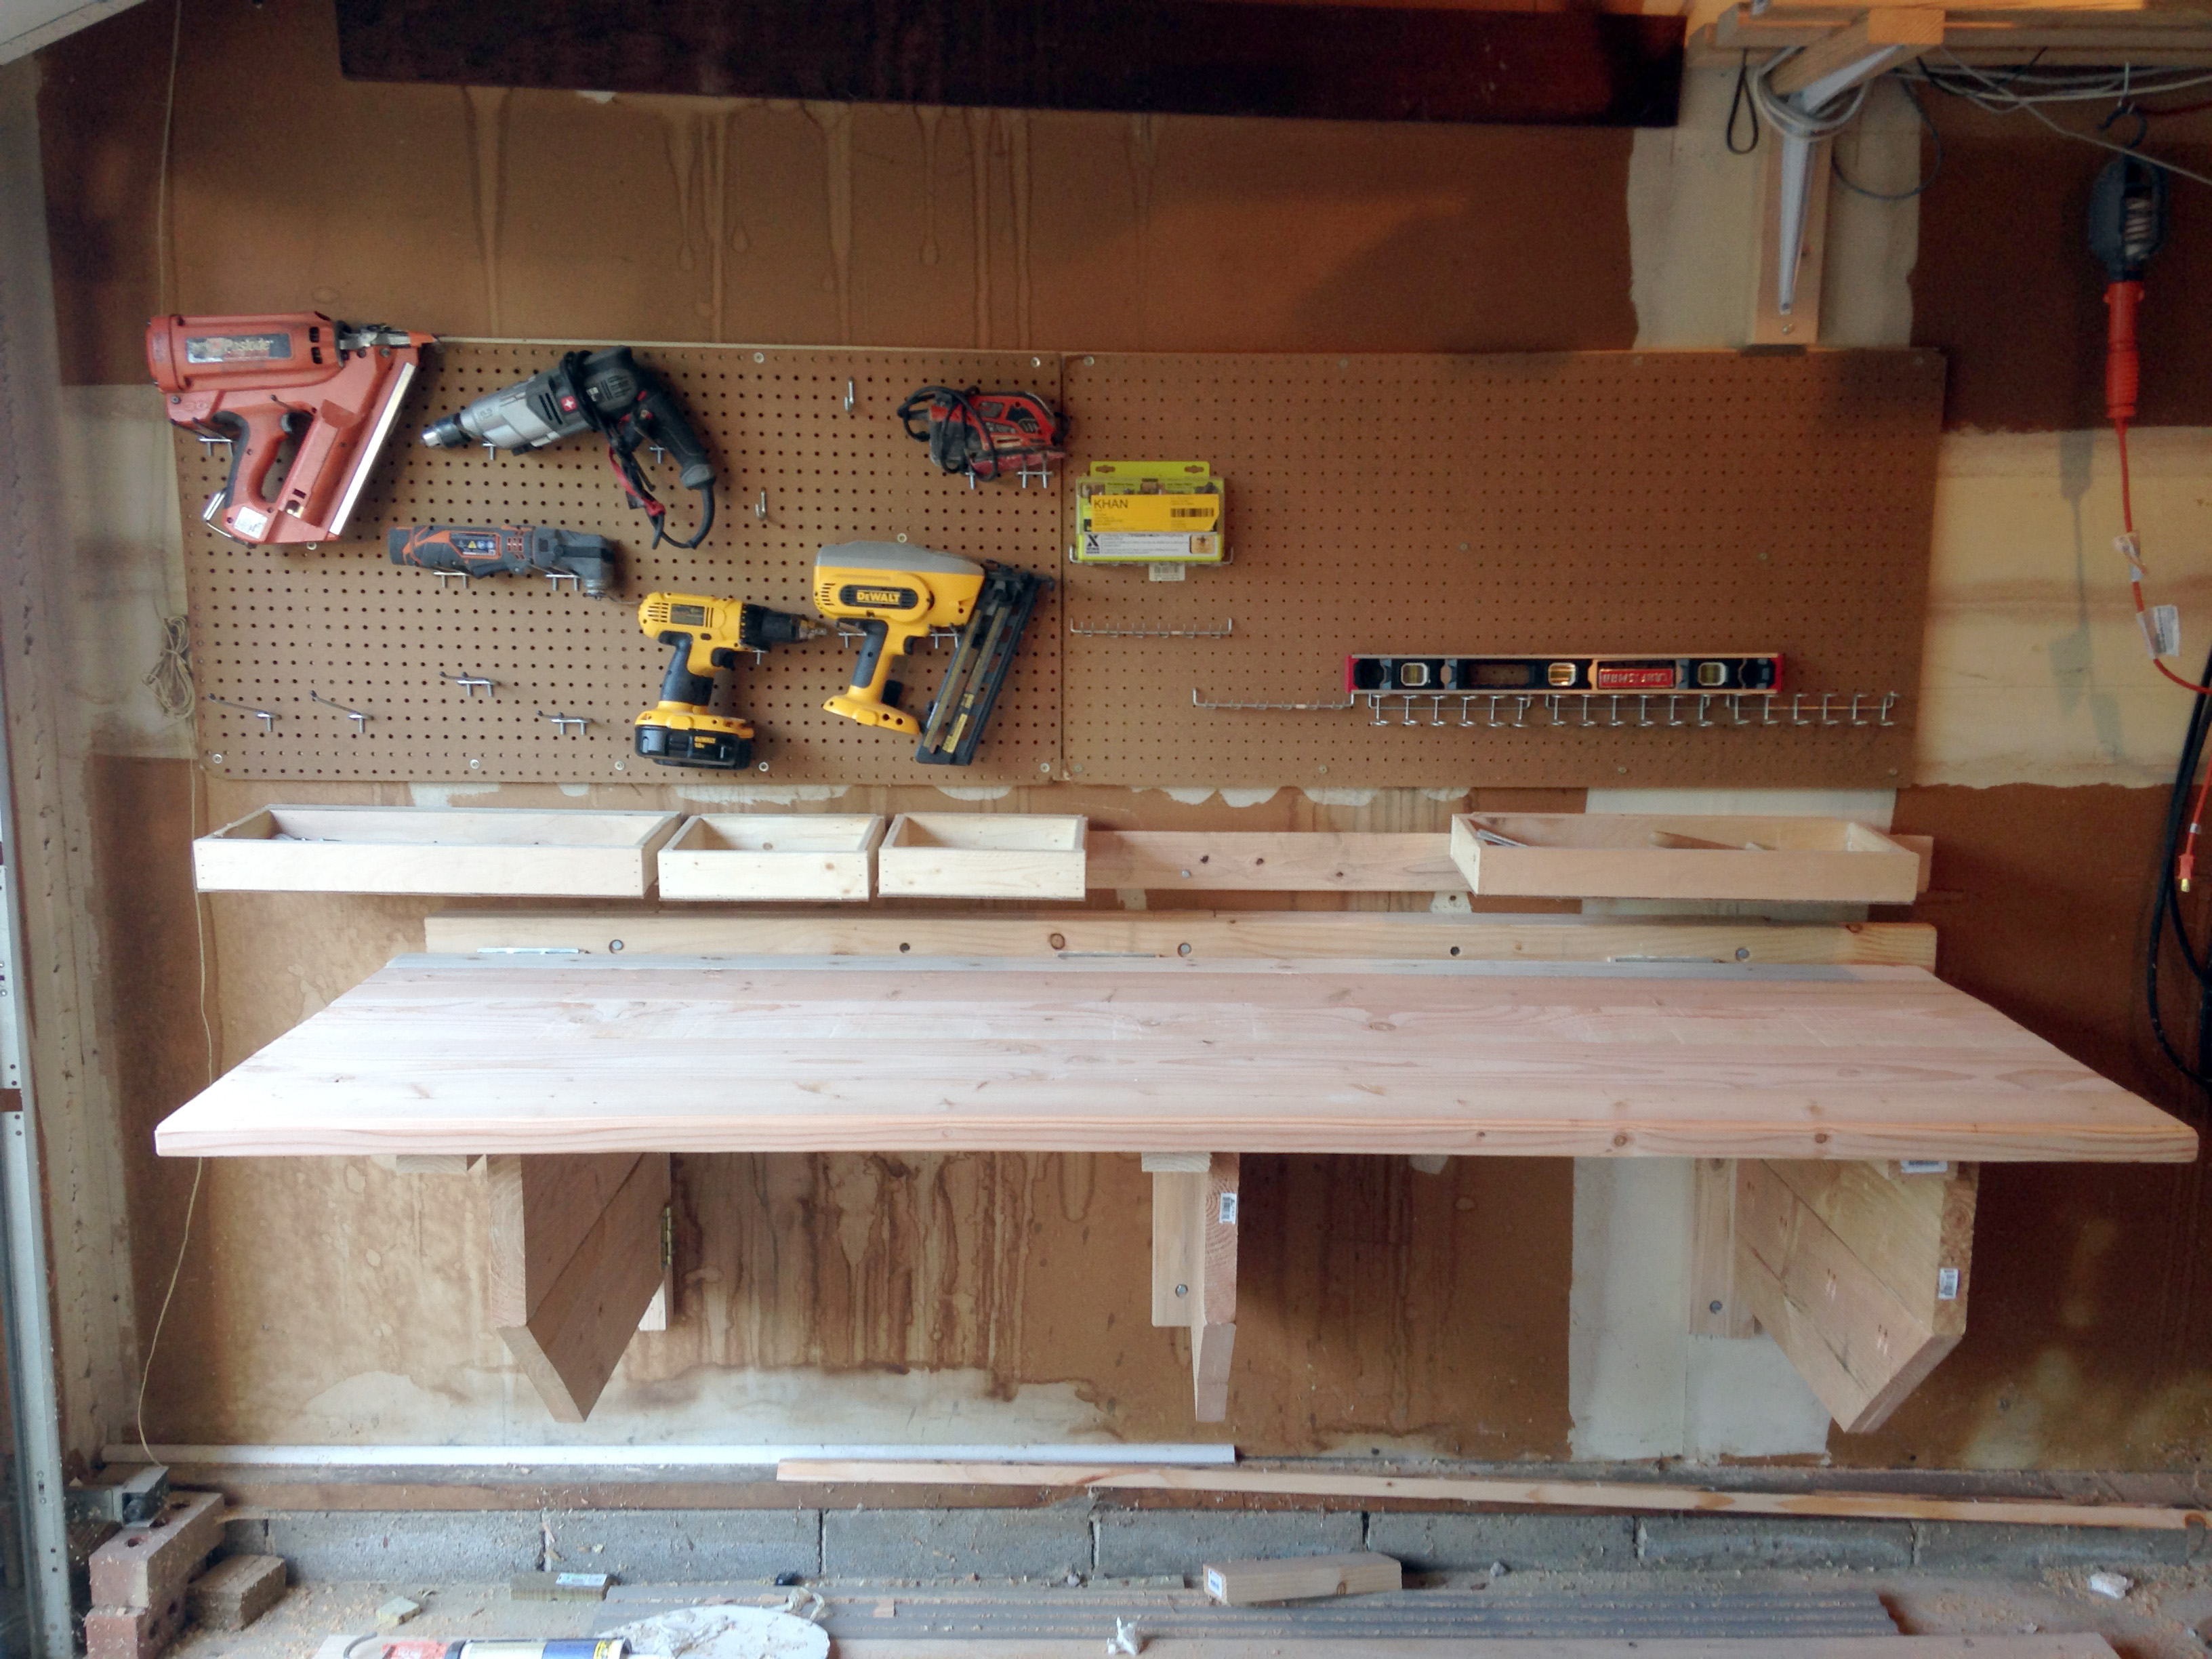 Wall Mounted Folding Workbench | Fold Down Workbench for Garage | Fold Down Workbench